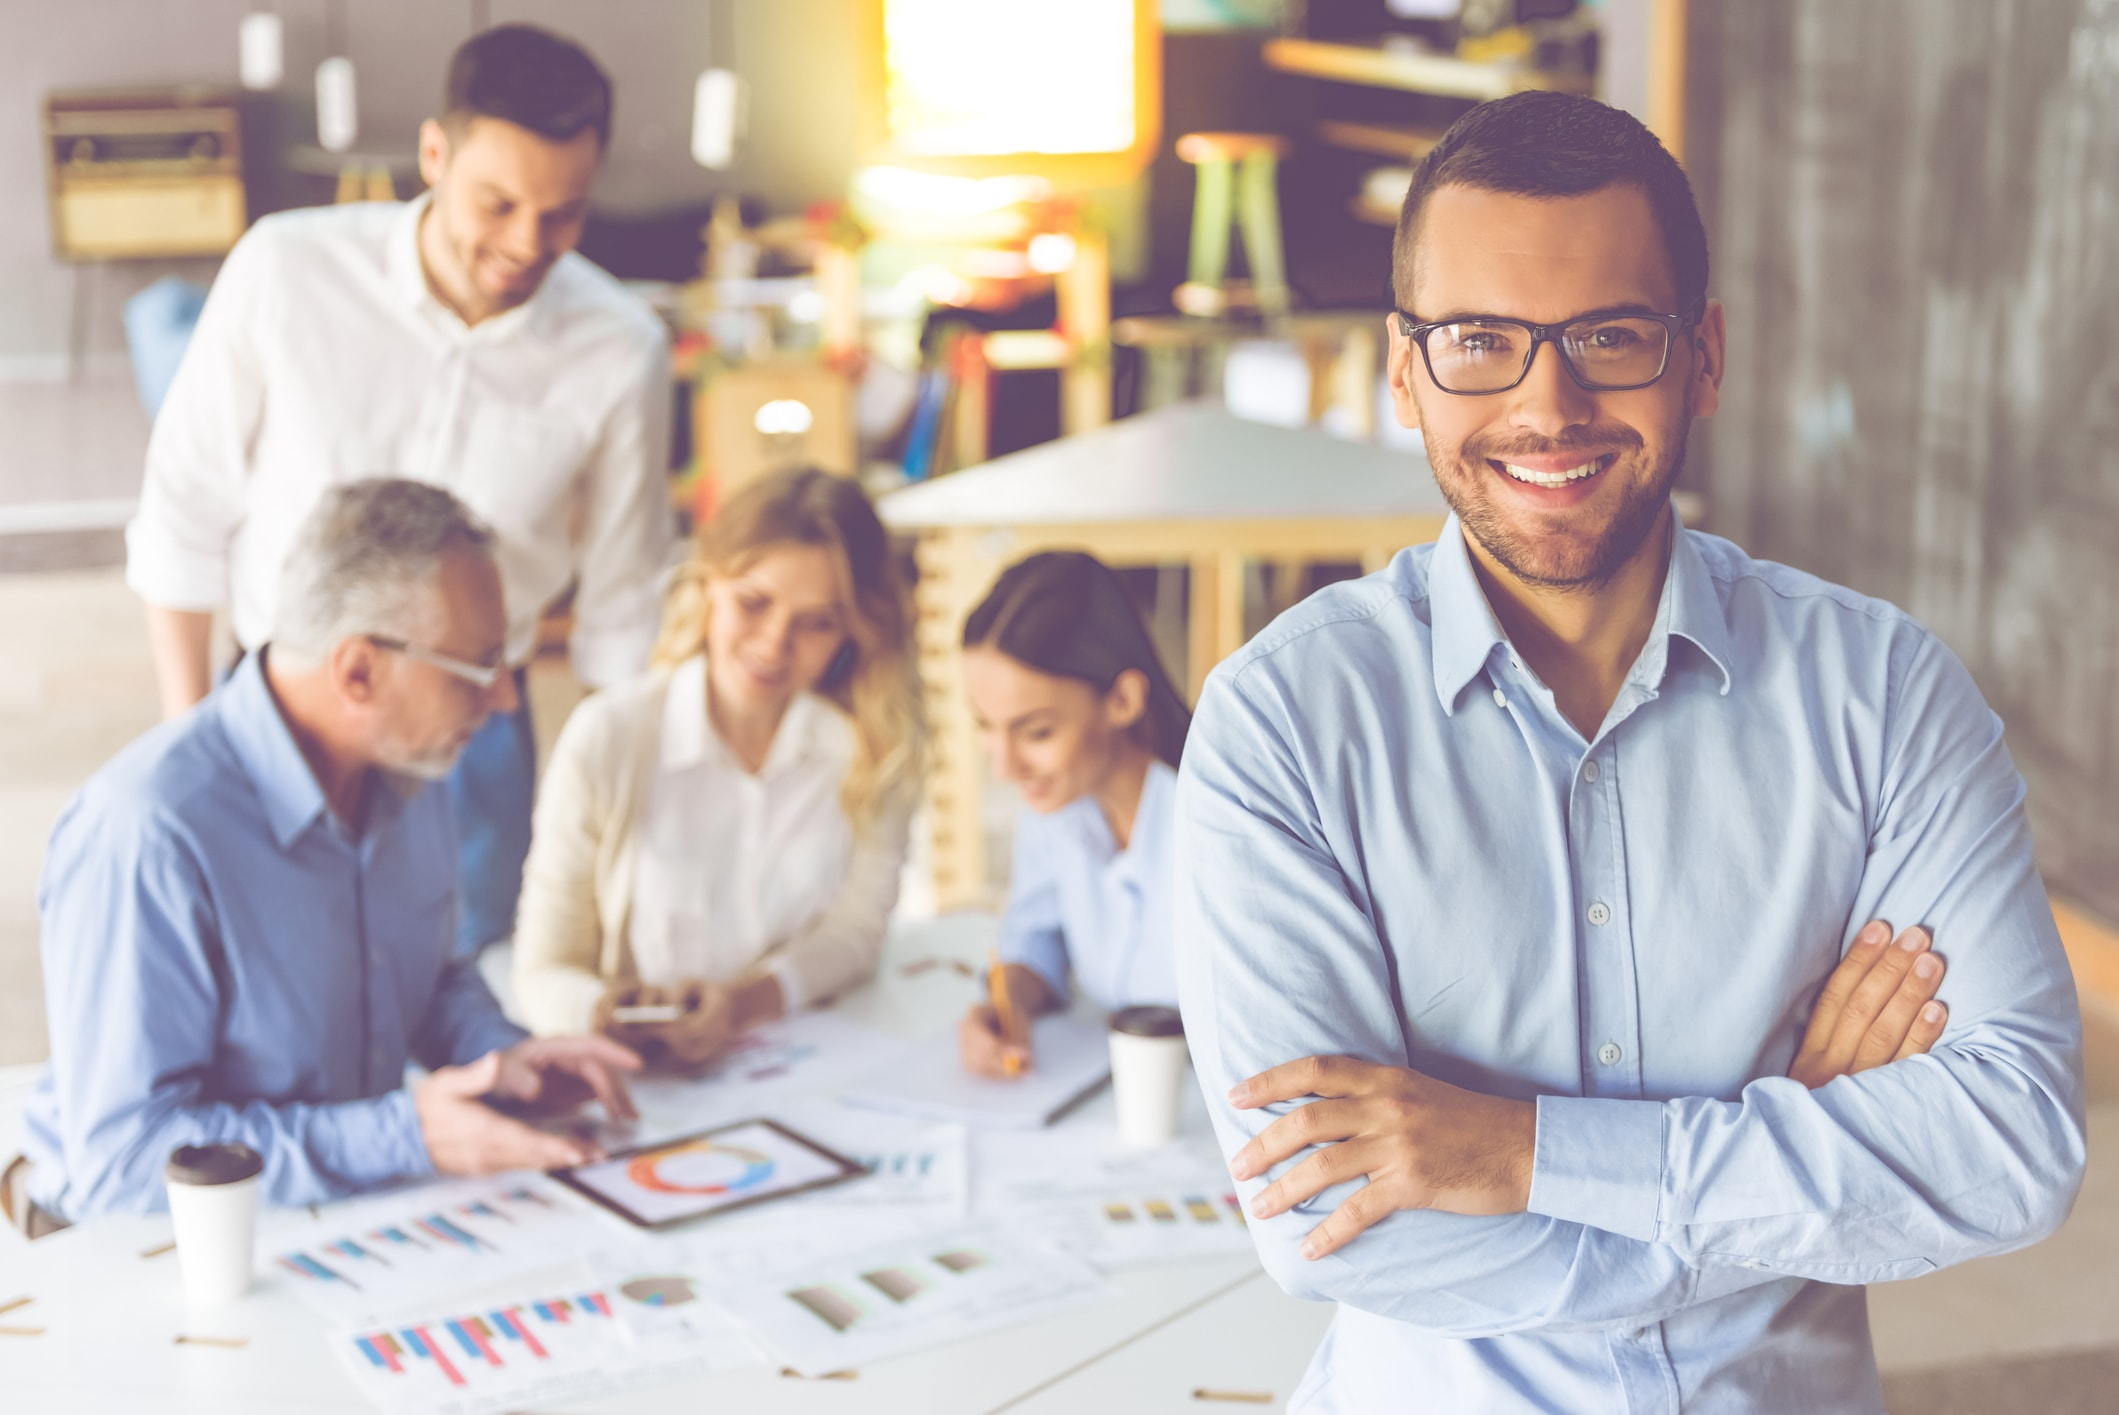 Cheap and Simple Office Extras That Can Boost Your Employees' Morale